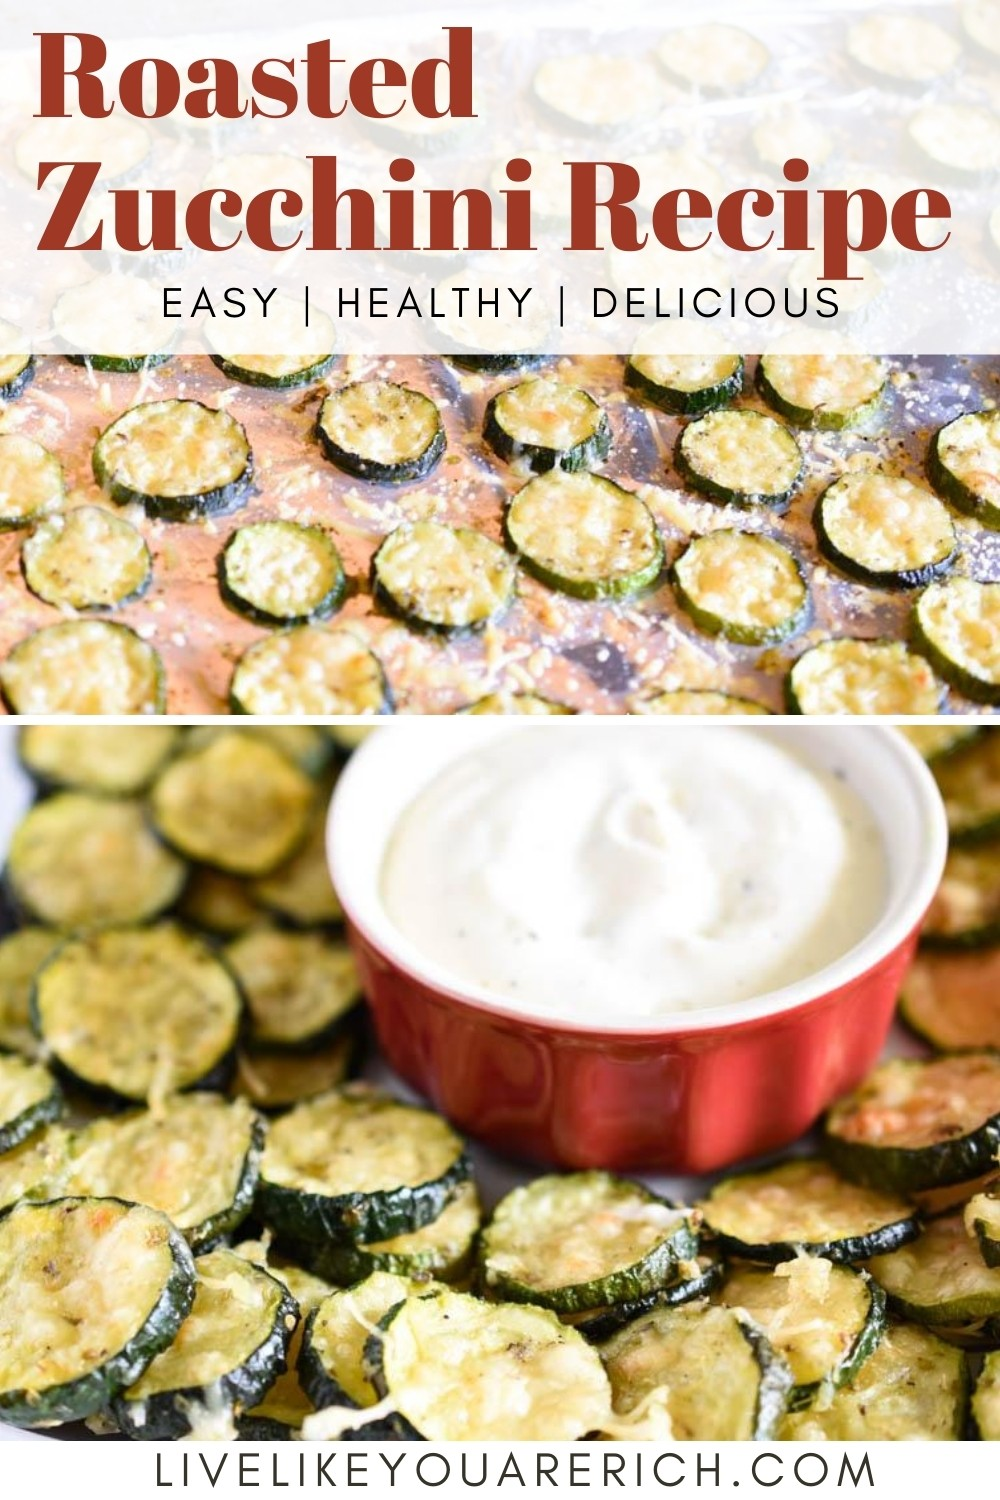 I love fresh veggies that can be seasoned, prepped, and cooked easily for dinner or snacking. Zucchini is one of those veggies. Slicing it up and tossing it in herbs, some olive oil, and then sprinkling parmesan over it makes a delicious and vitamin-rich side dish or snack! This is one of my favorite zucchini recipes. I make it quite often. My kids will even devour these—and that's saying a lot.